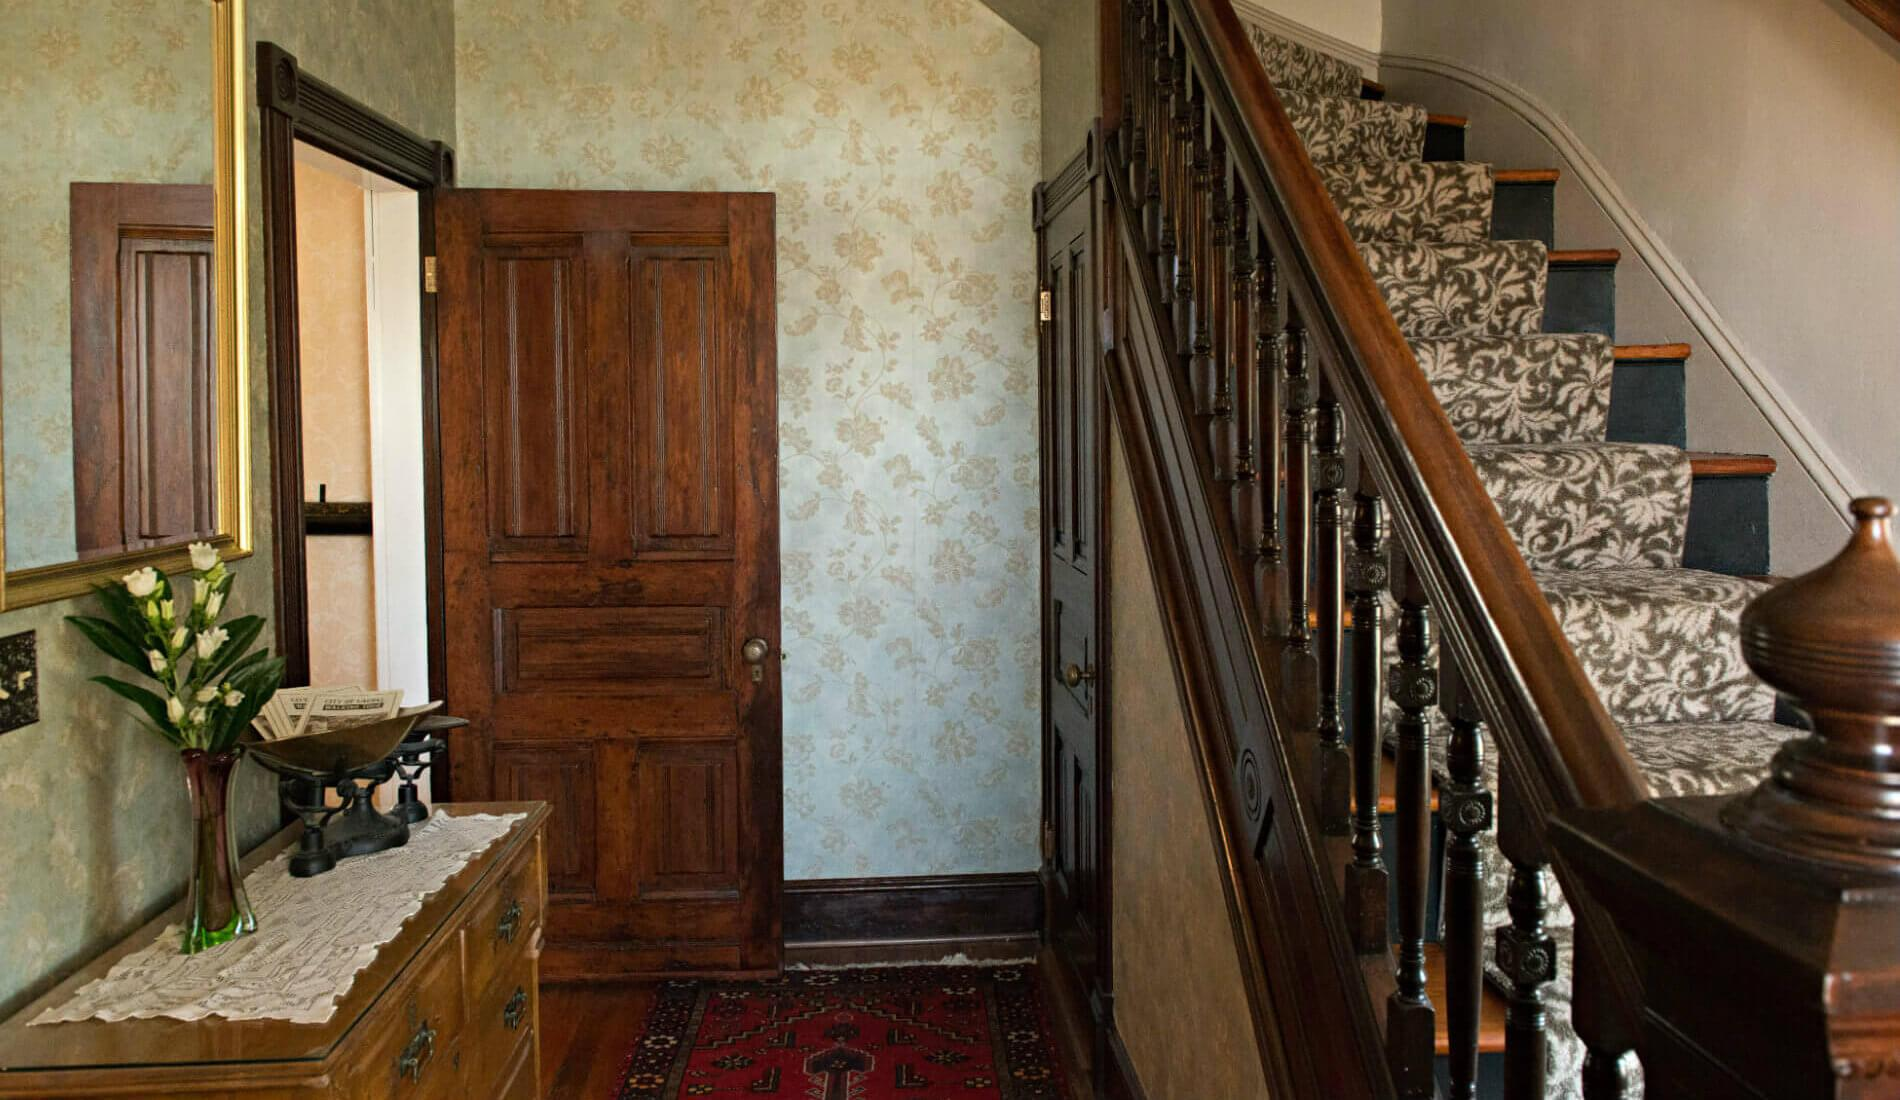 Cream wallpapered hallway with brown wooden staircase to the right and a wooden decorative table against the left wall